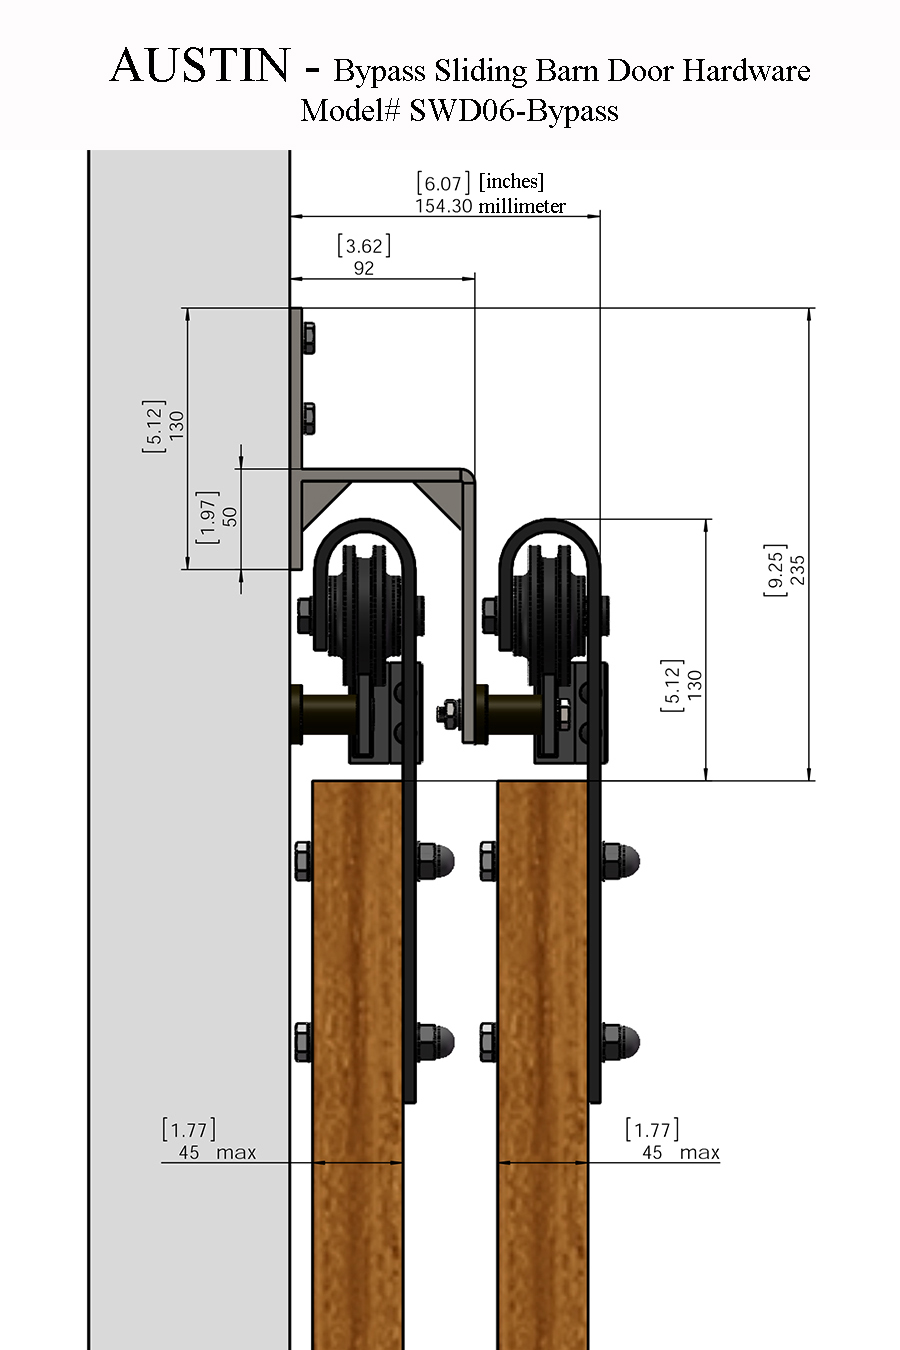 Austin Bypass Sliding Barn Door Hardware